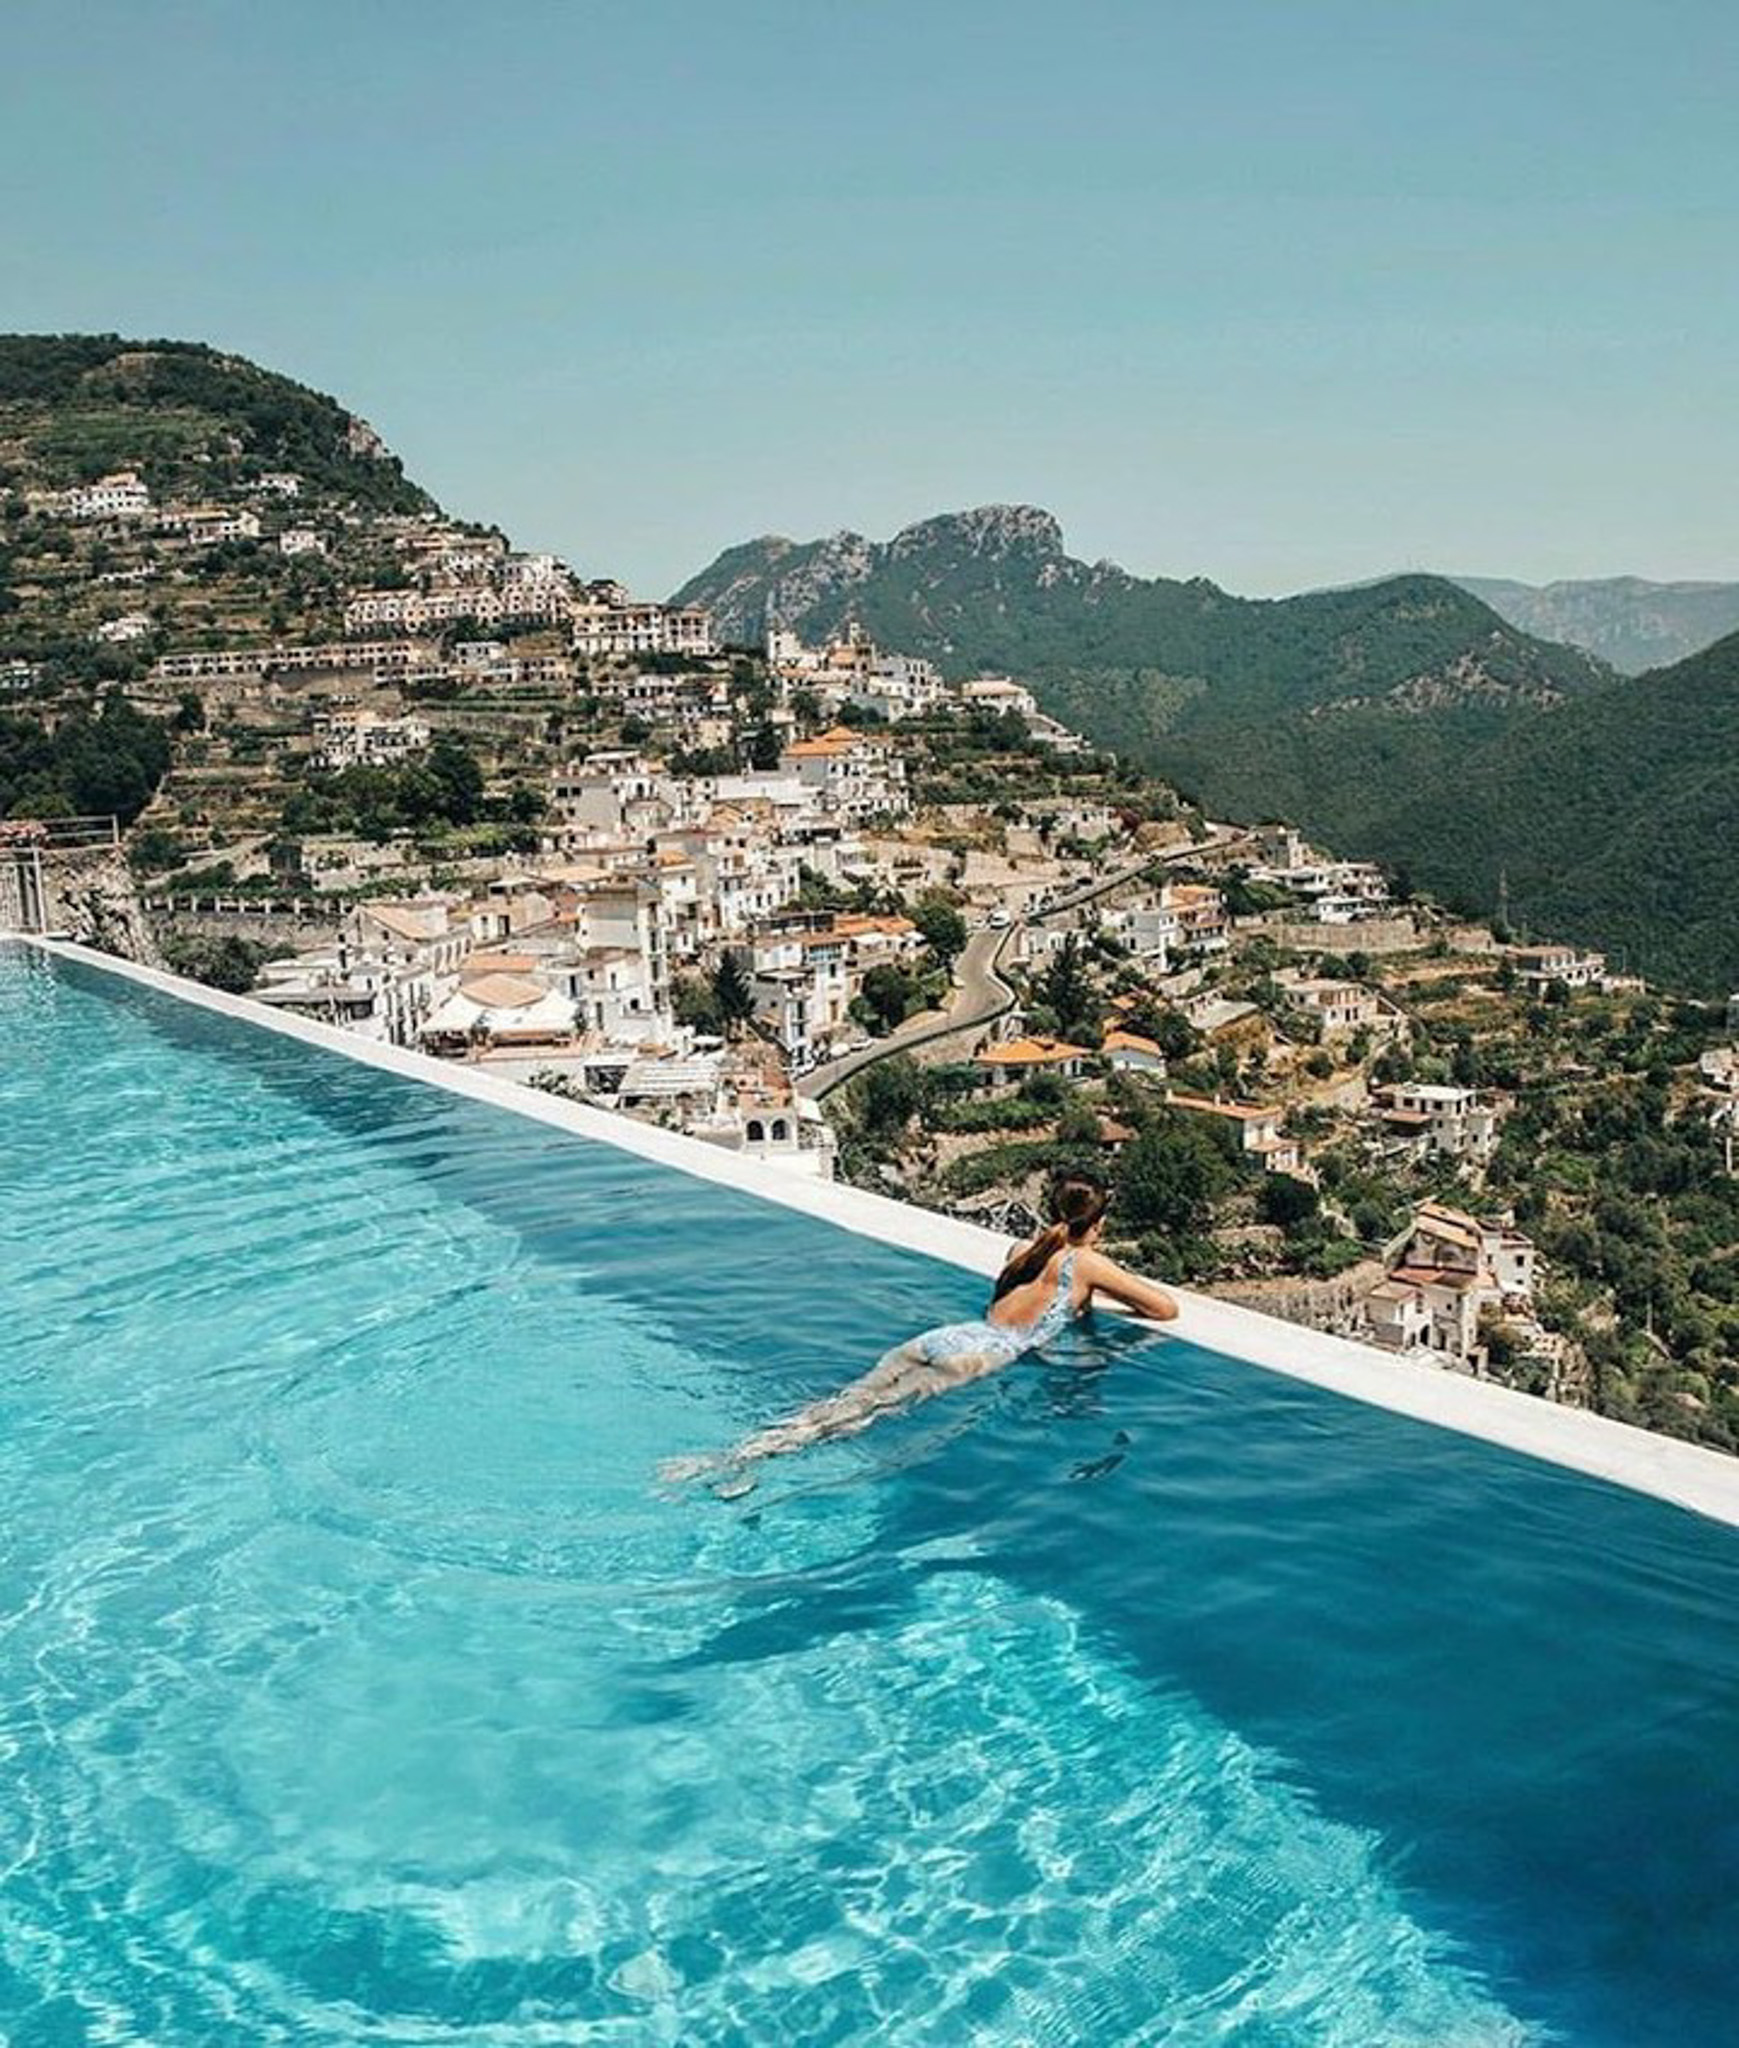 Ravello,   Italy - Azure, Building, Coastal and oceanic landforms, Leisure, Mountain, Person, Sky, Swimming pool, Travel, Water